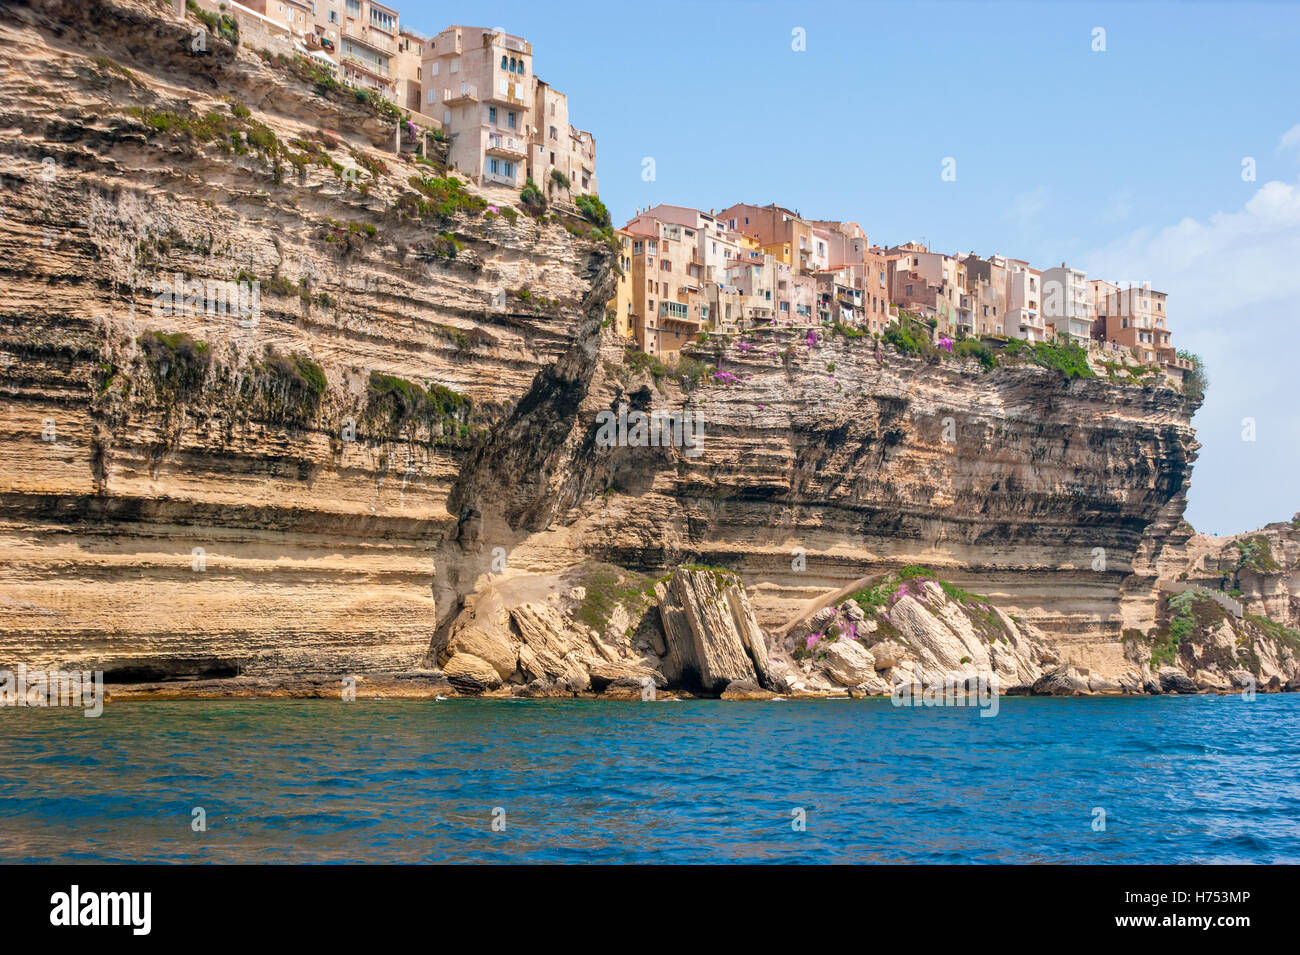 the medieval houses of the city of Bonifacio located on the edge of the cliff, Corsica - Stock Image